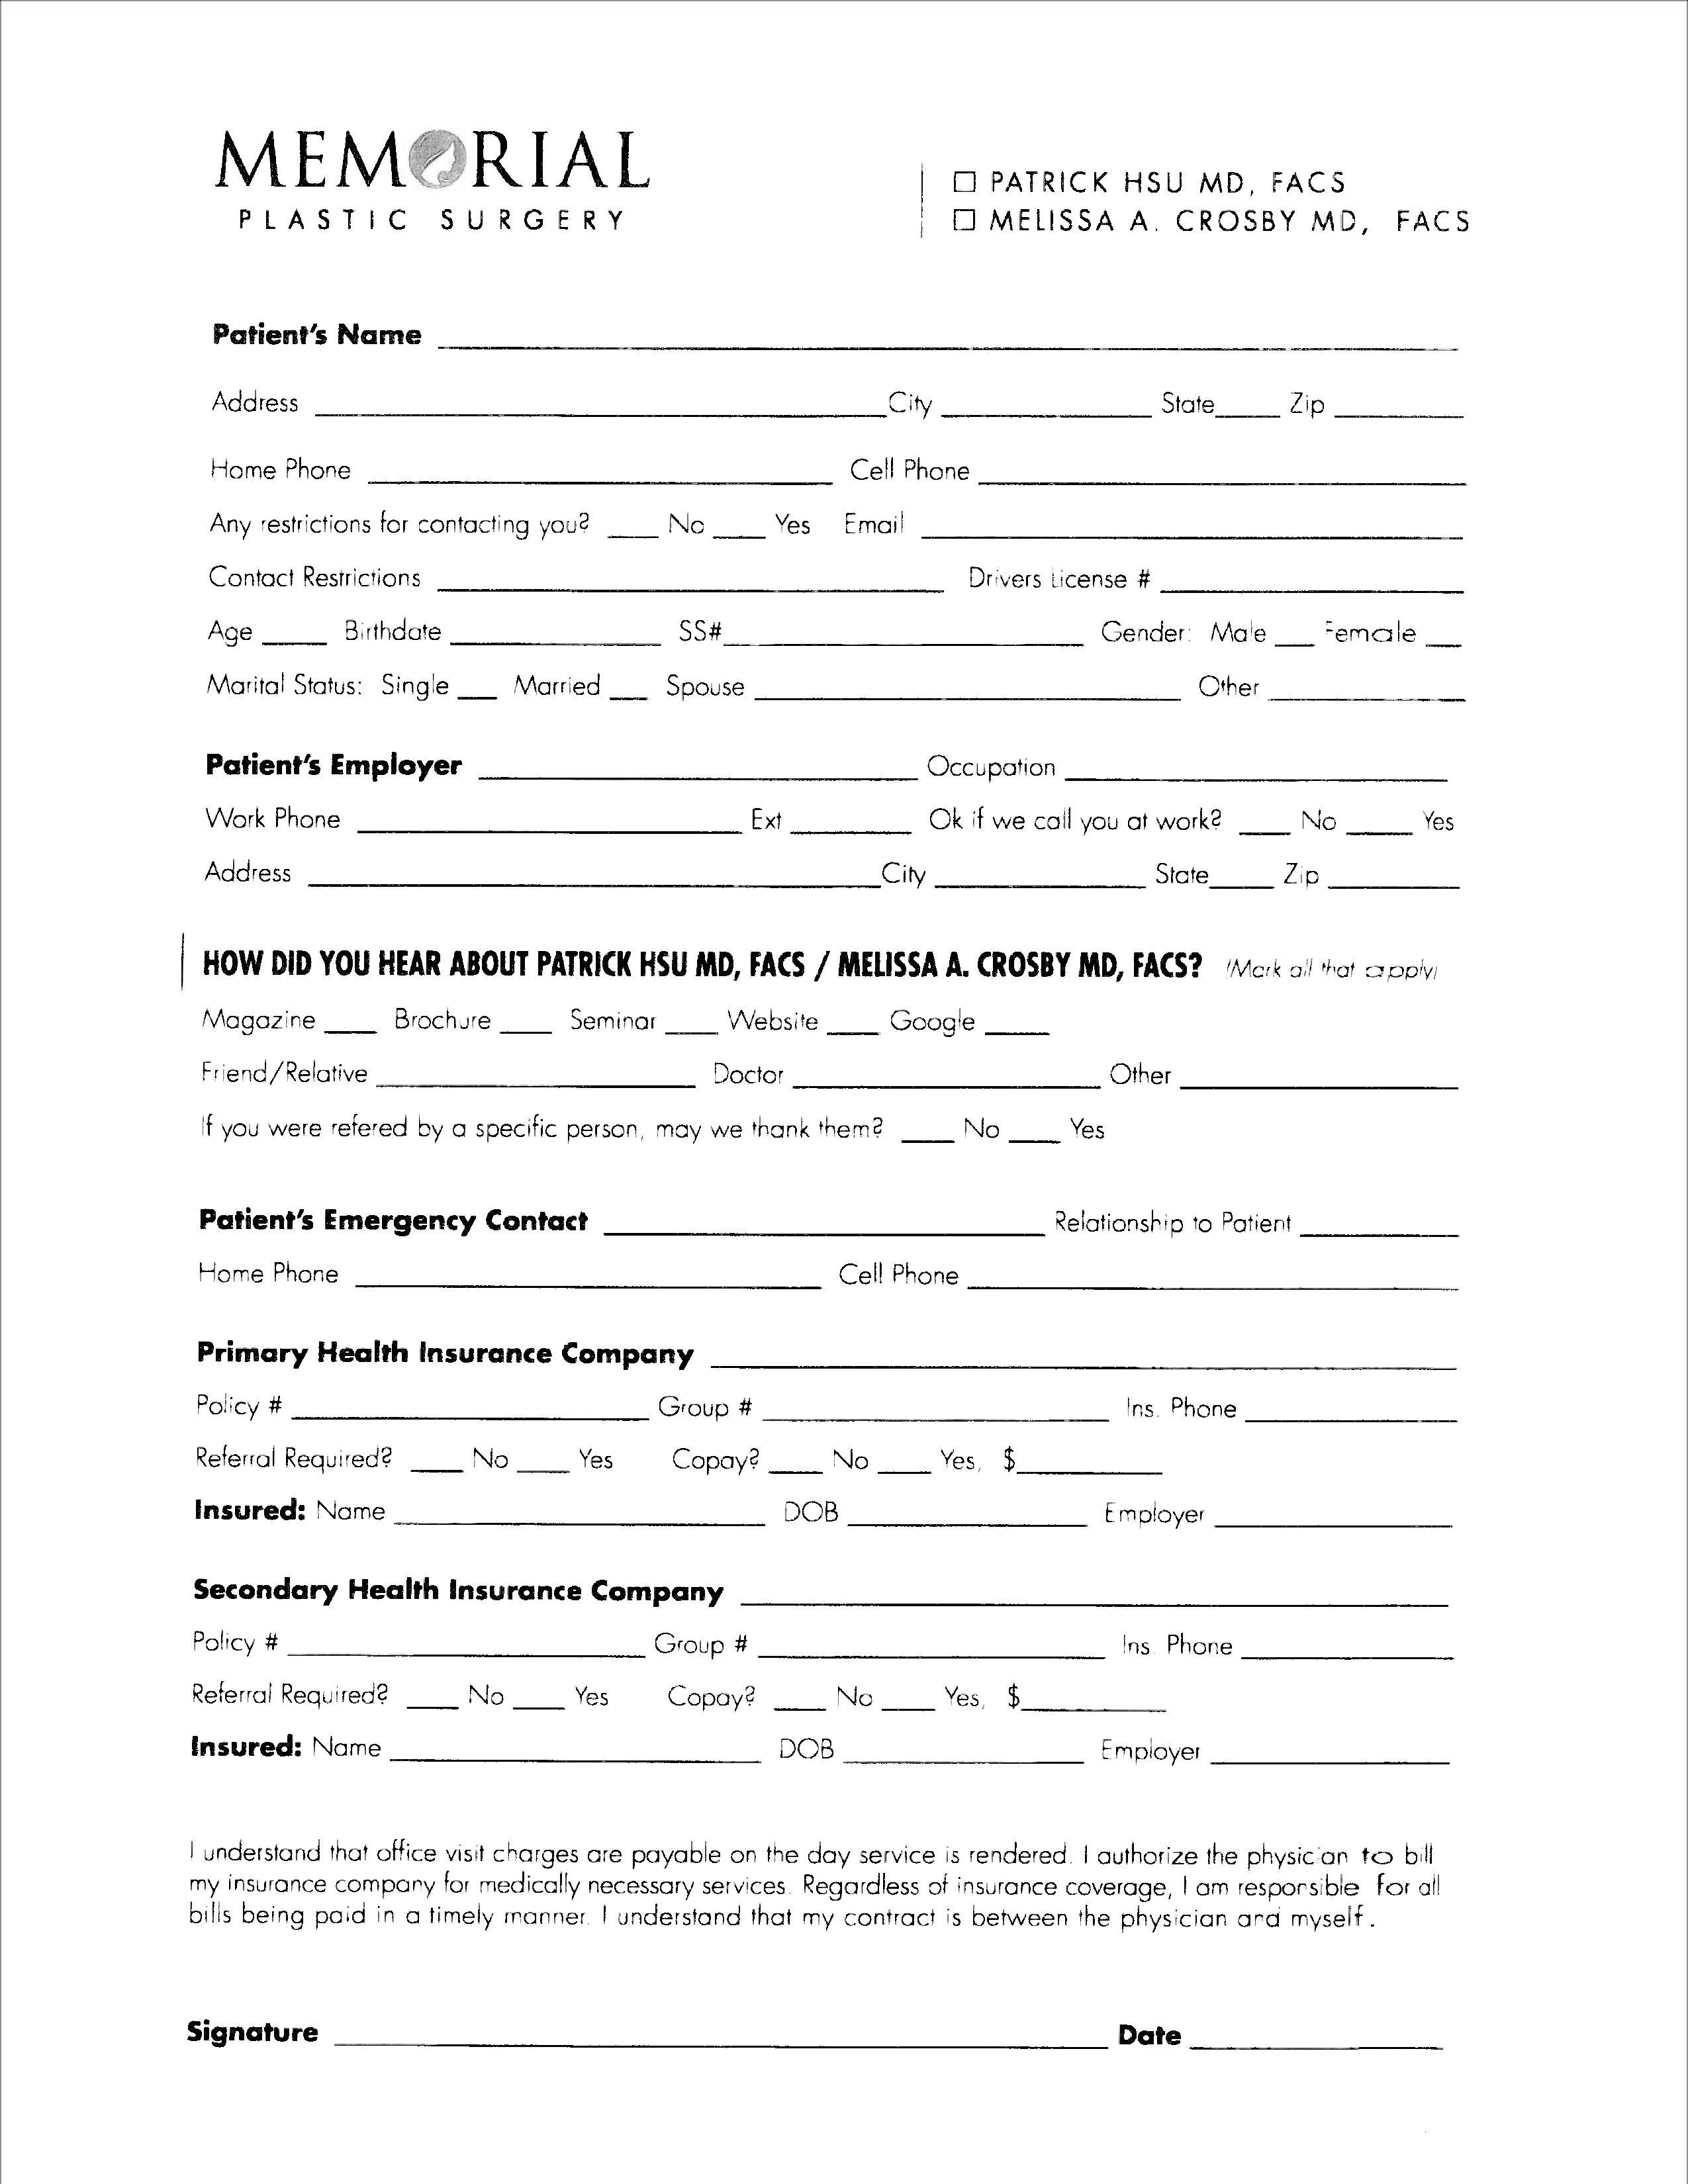 For a faster consultation with Memorial Plastic Surgery, fill-out ...